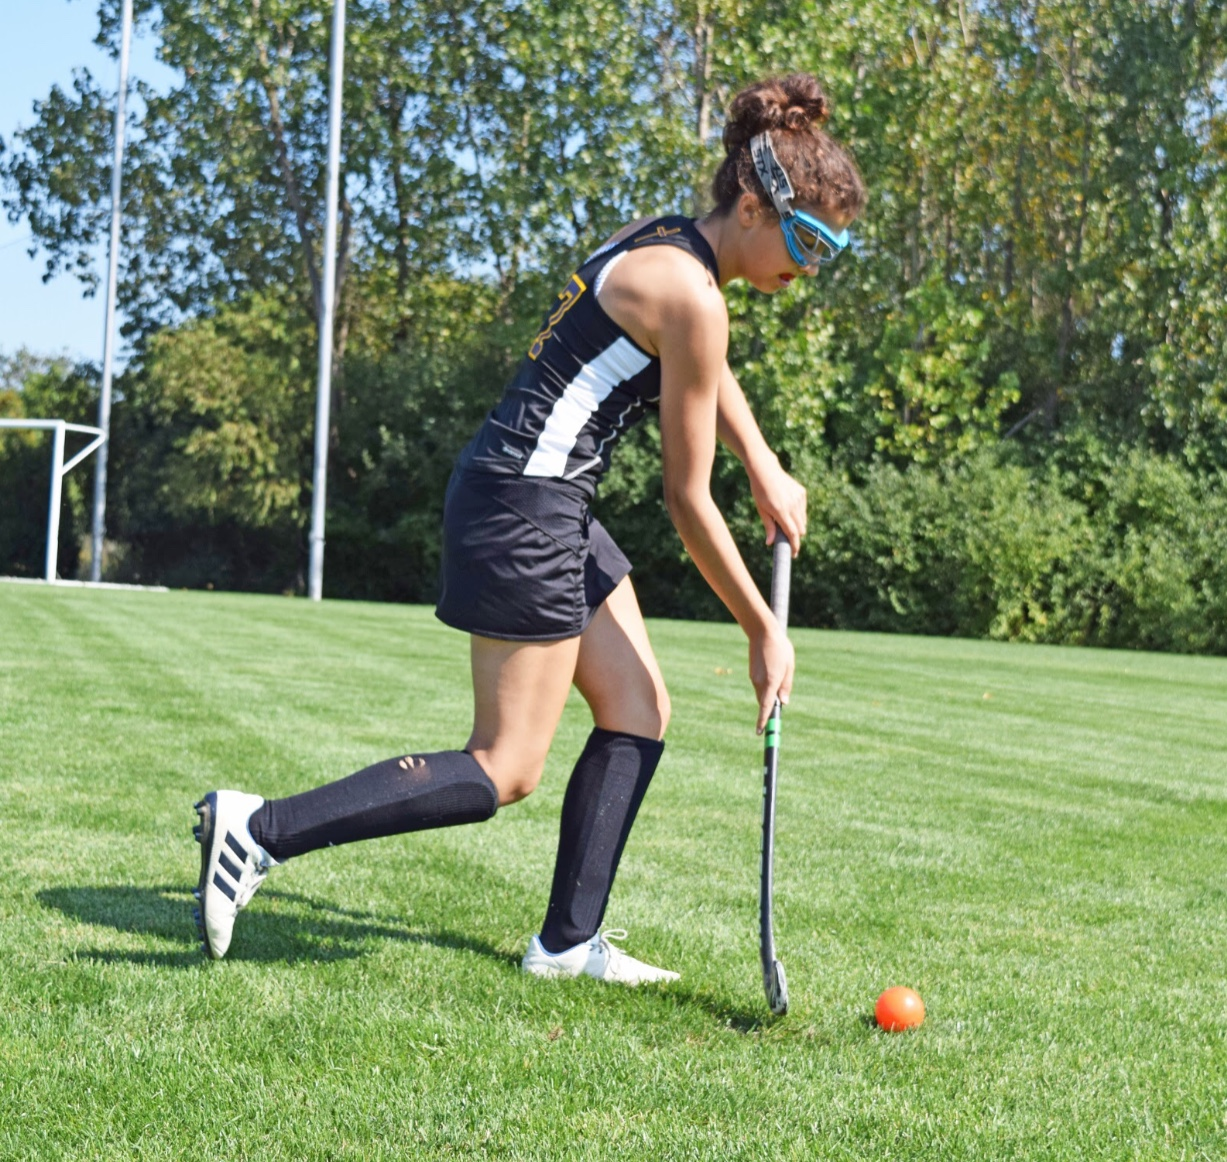 Sophomore Julia Rea shoots the ball for a goal mid-practice. Photo by Rachael Salah